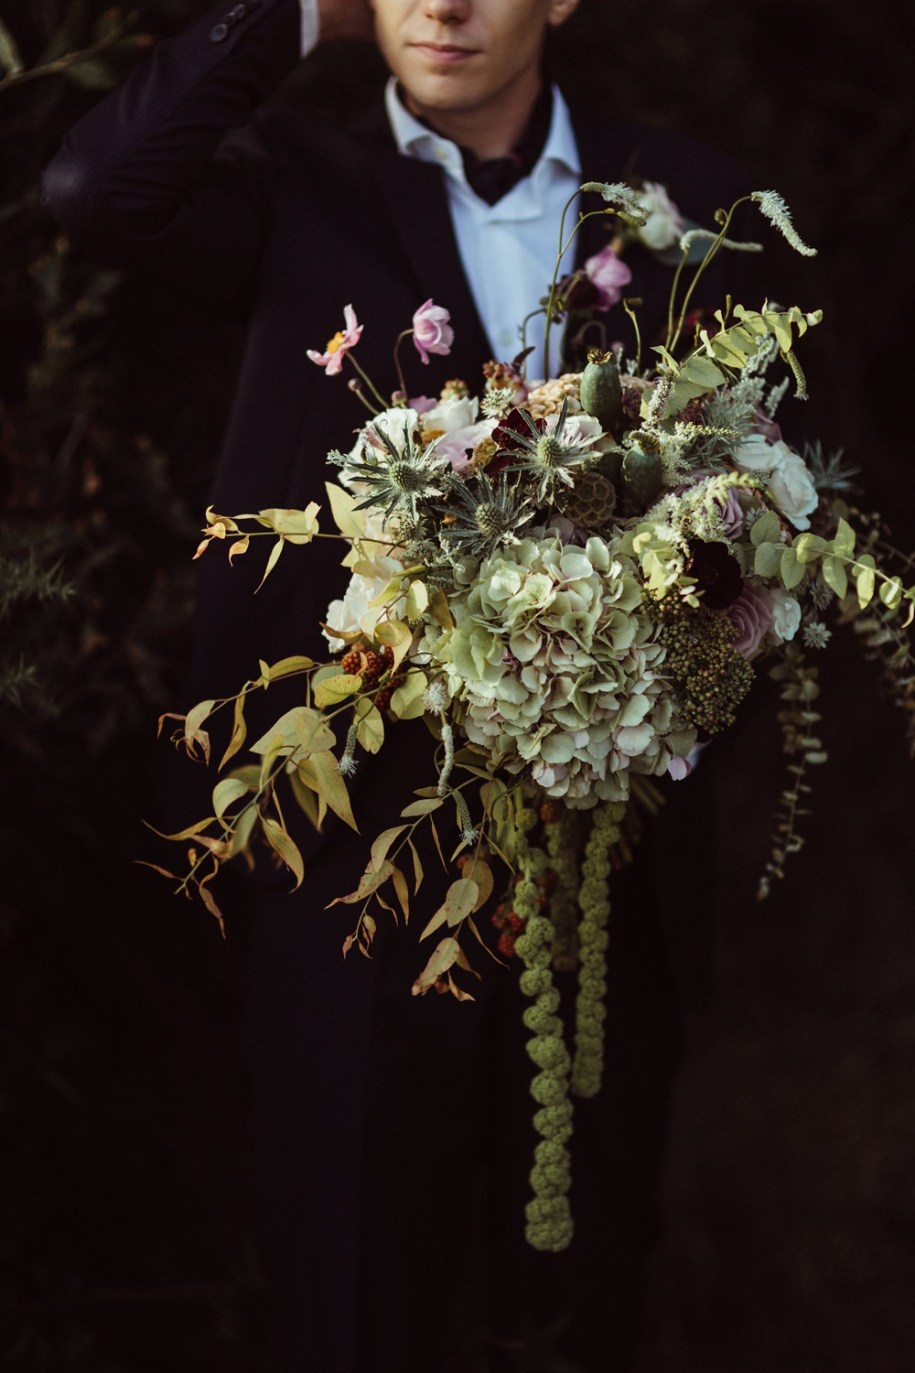 groom holding a beautiful bouquet in New Forest during portrait shoot